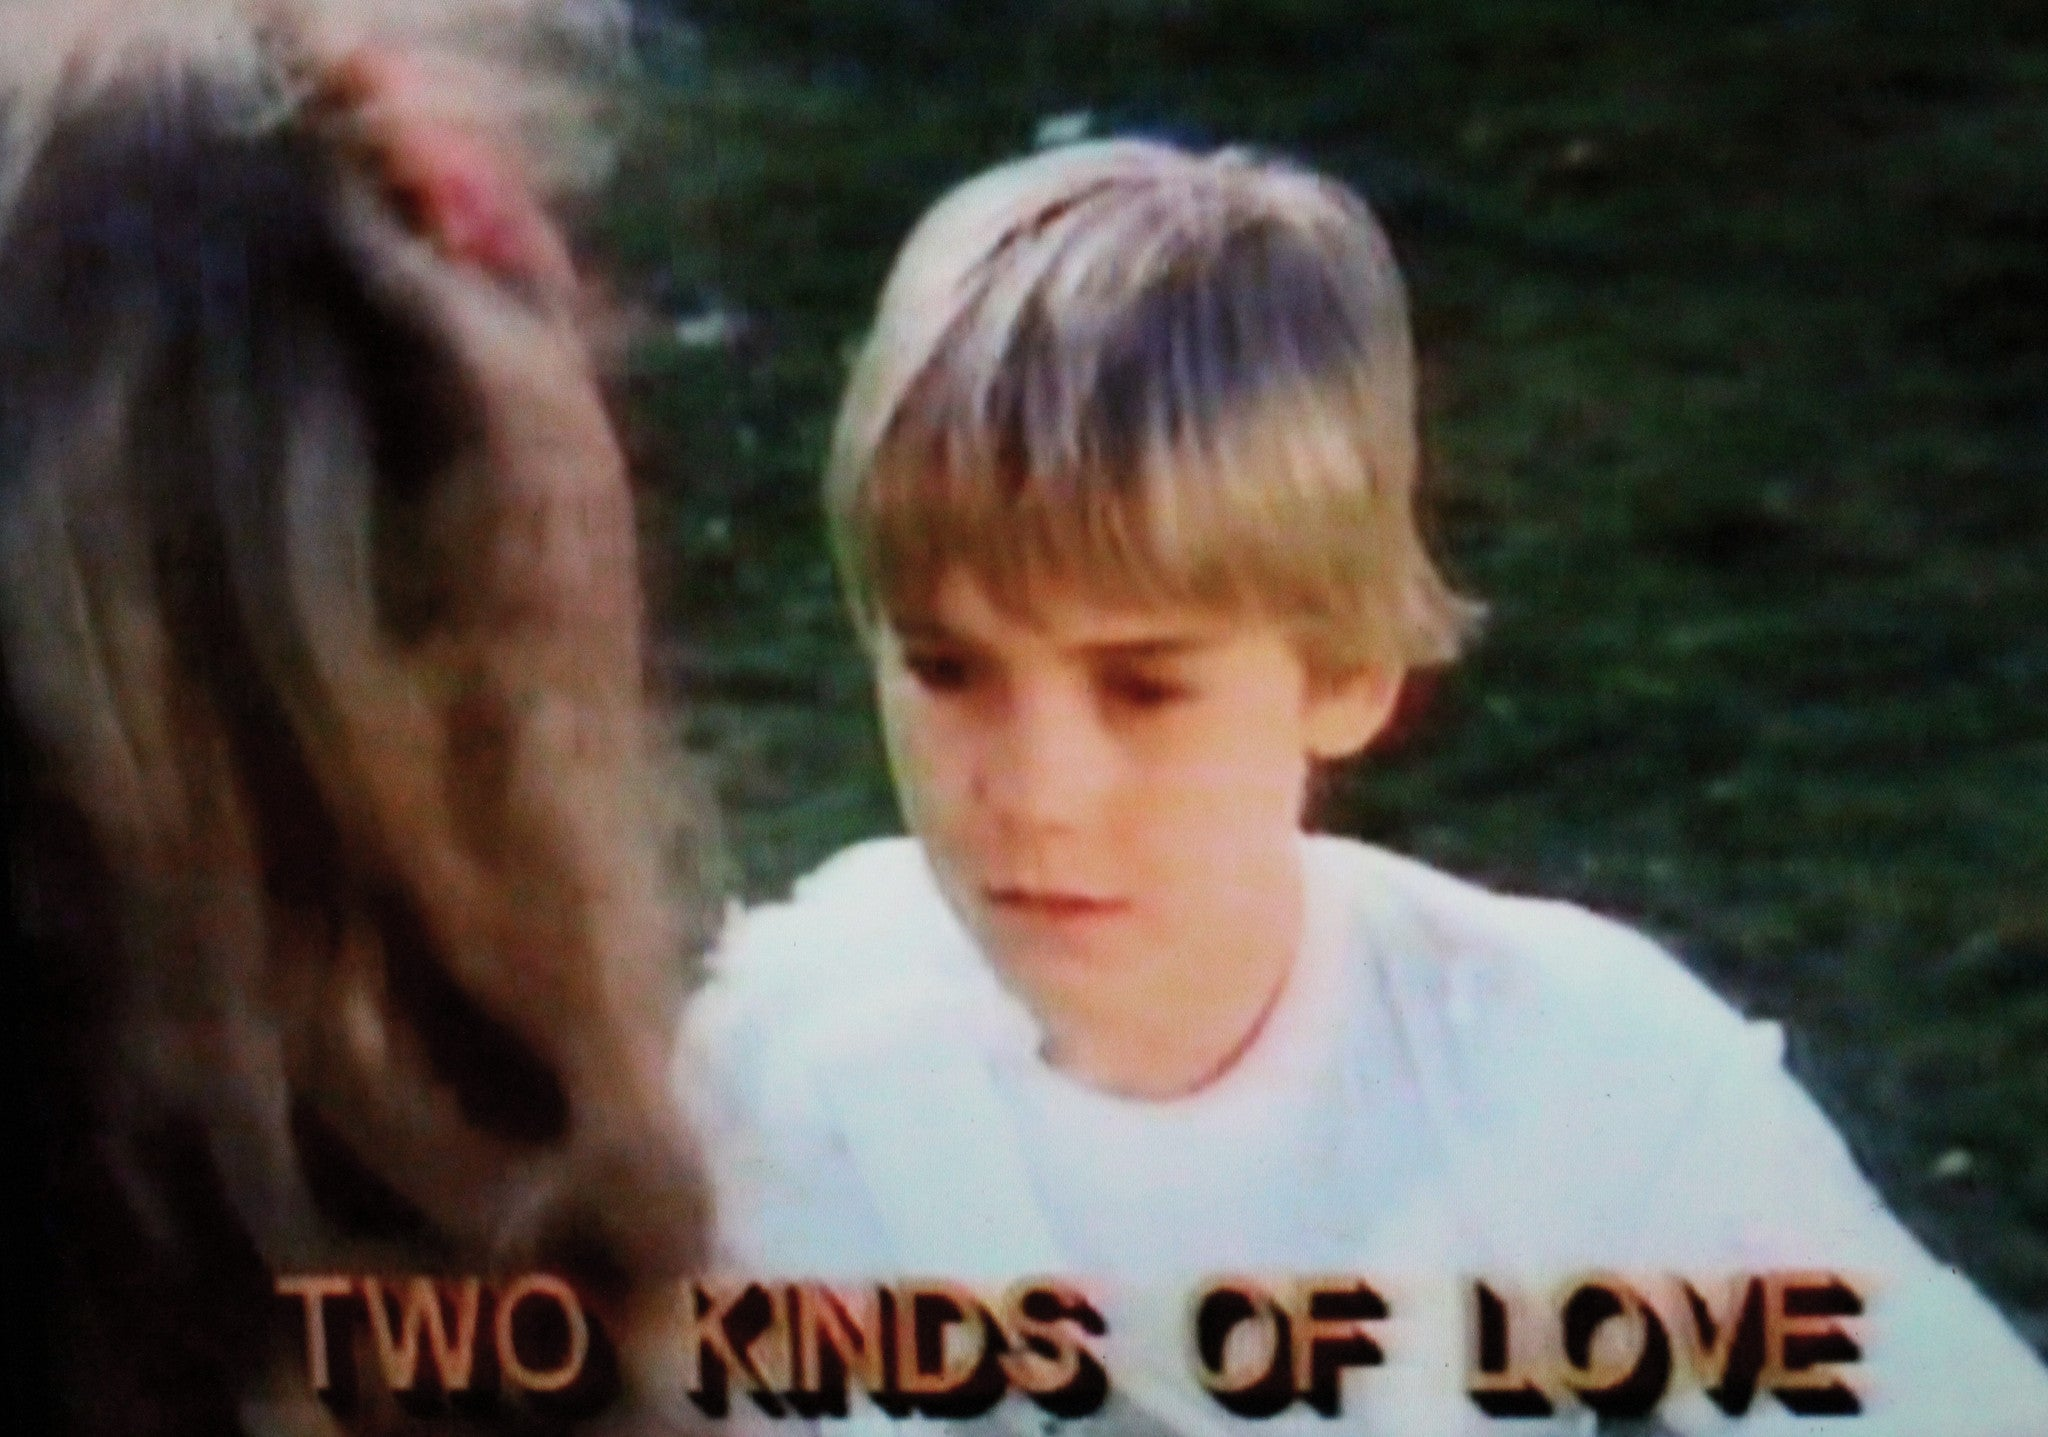 TWO KINDS OF LOVE (CBS-TVM) - Rewatch Classic TV - 1